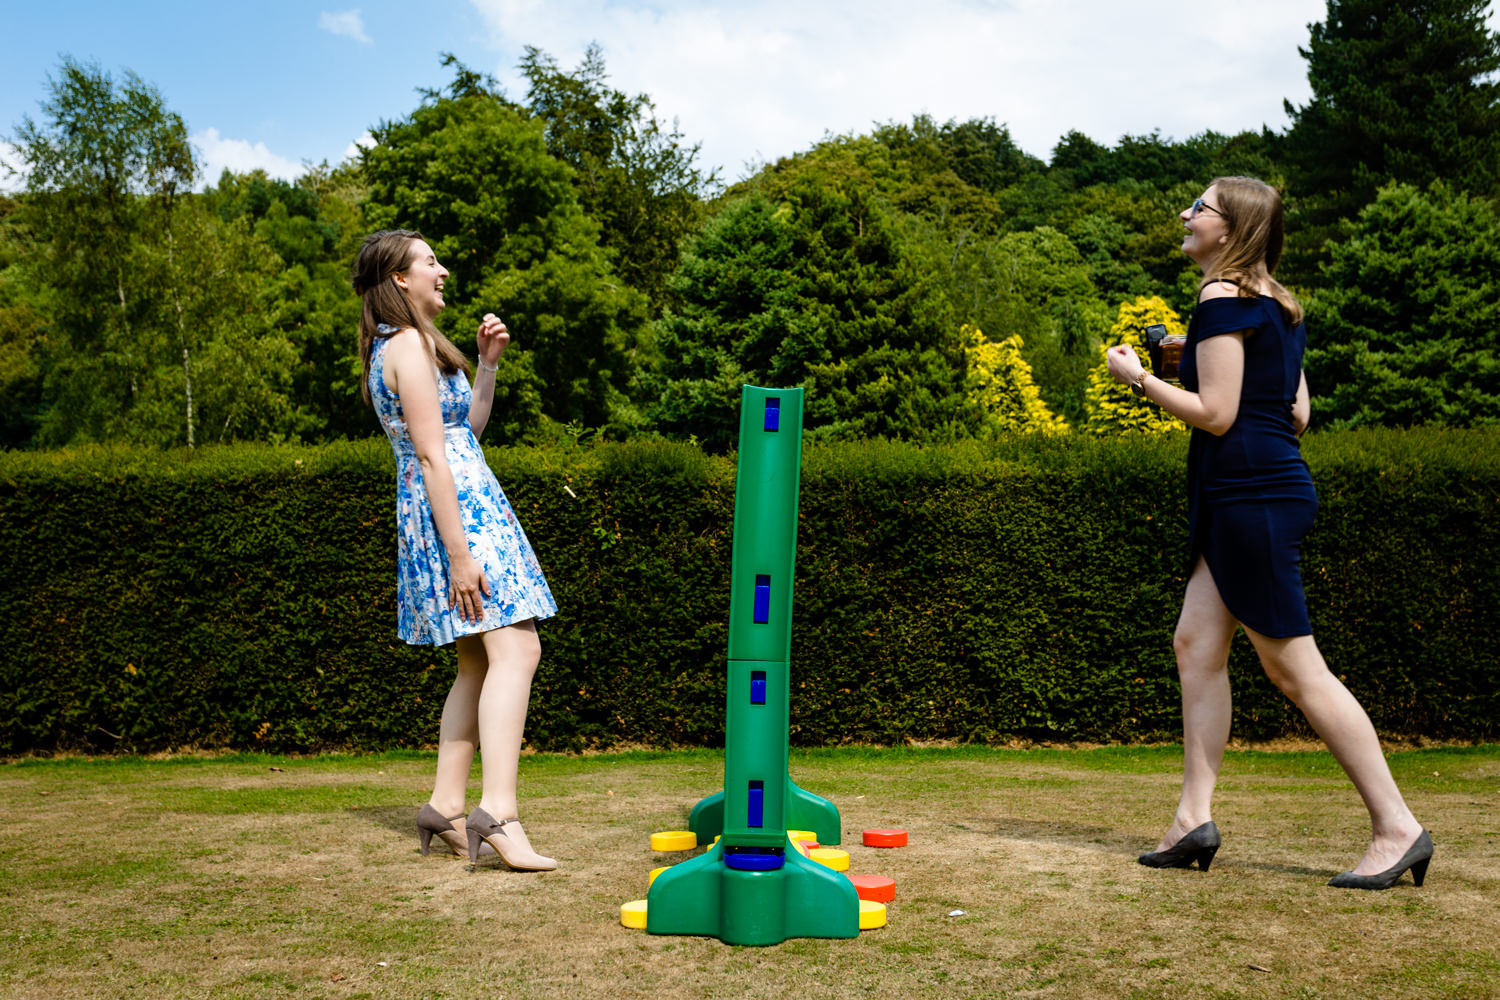 Relaxed and fun games in the garden at a wedding.